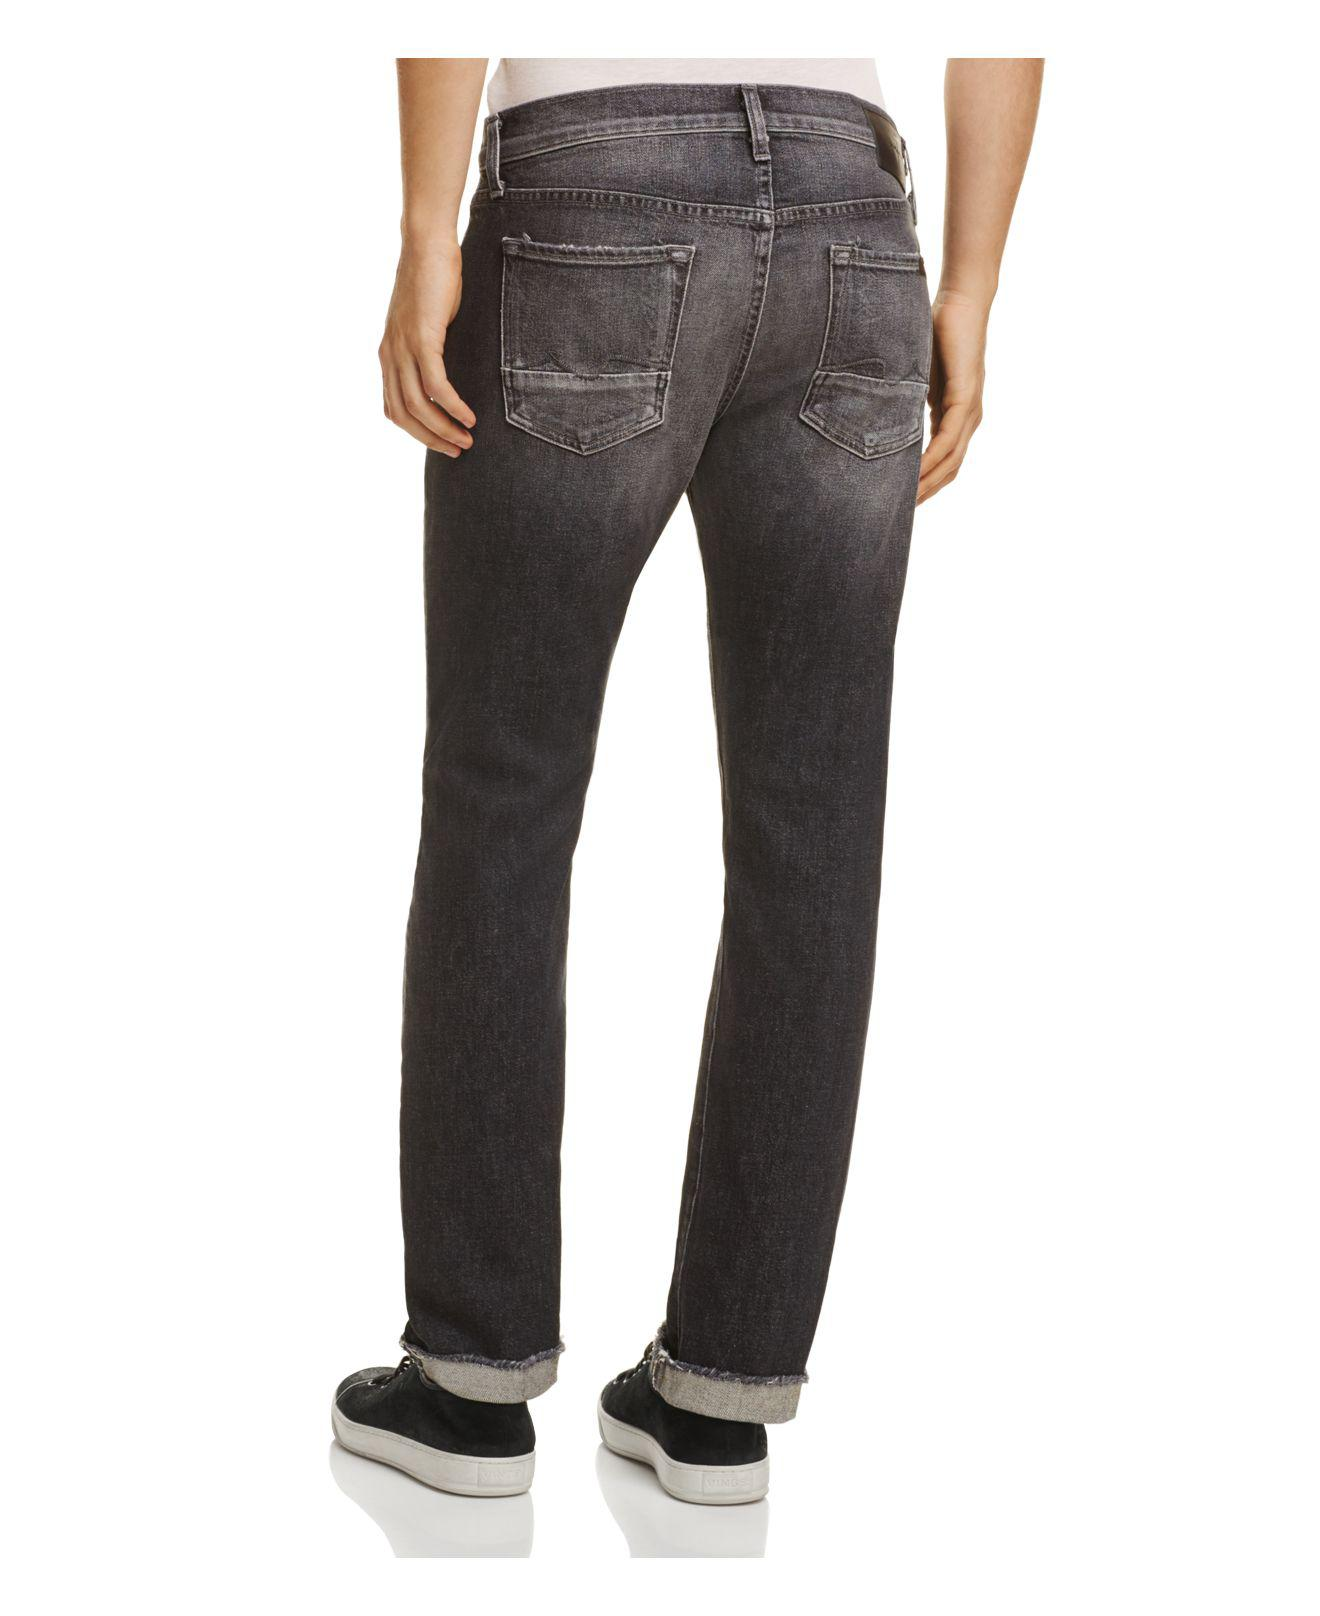 7 For All Mankind Denim Cuffed Paxton Skinny Fit Jeans In Blowout for Men